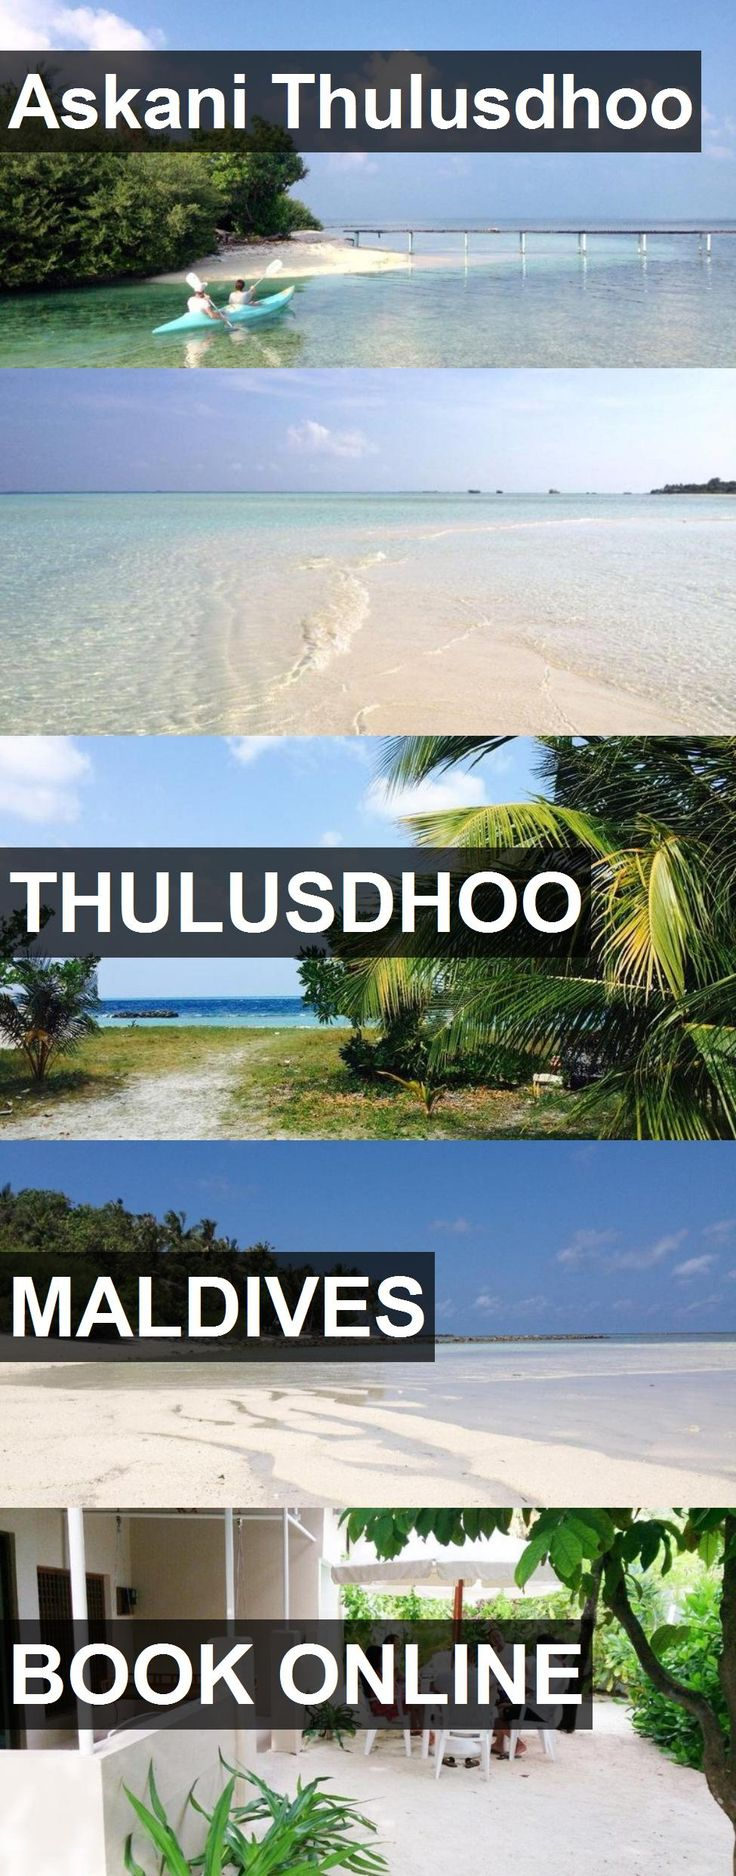 Hotel Askani Thulusdhoo in Thulusdhoo, Maldives. For more information, photos, reviews and best prices please follow the link. #Maldives #Thulusdhoo #travel #vacation #hotel